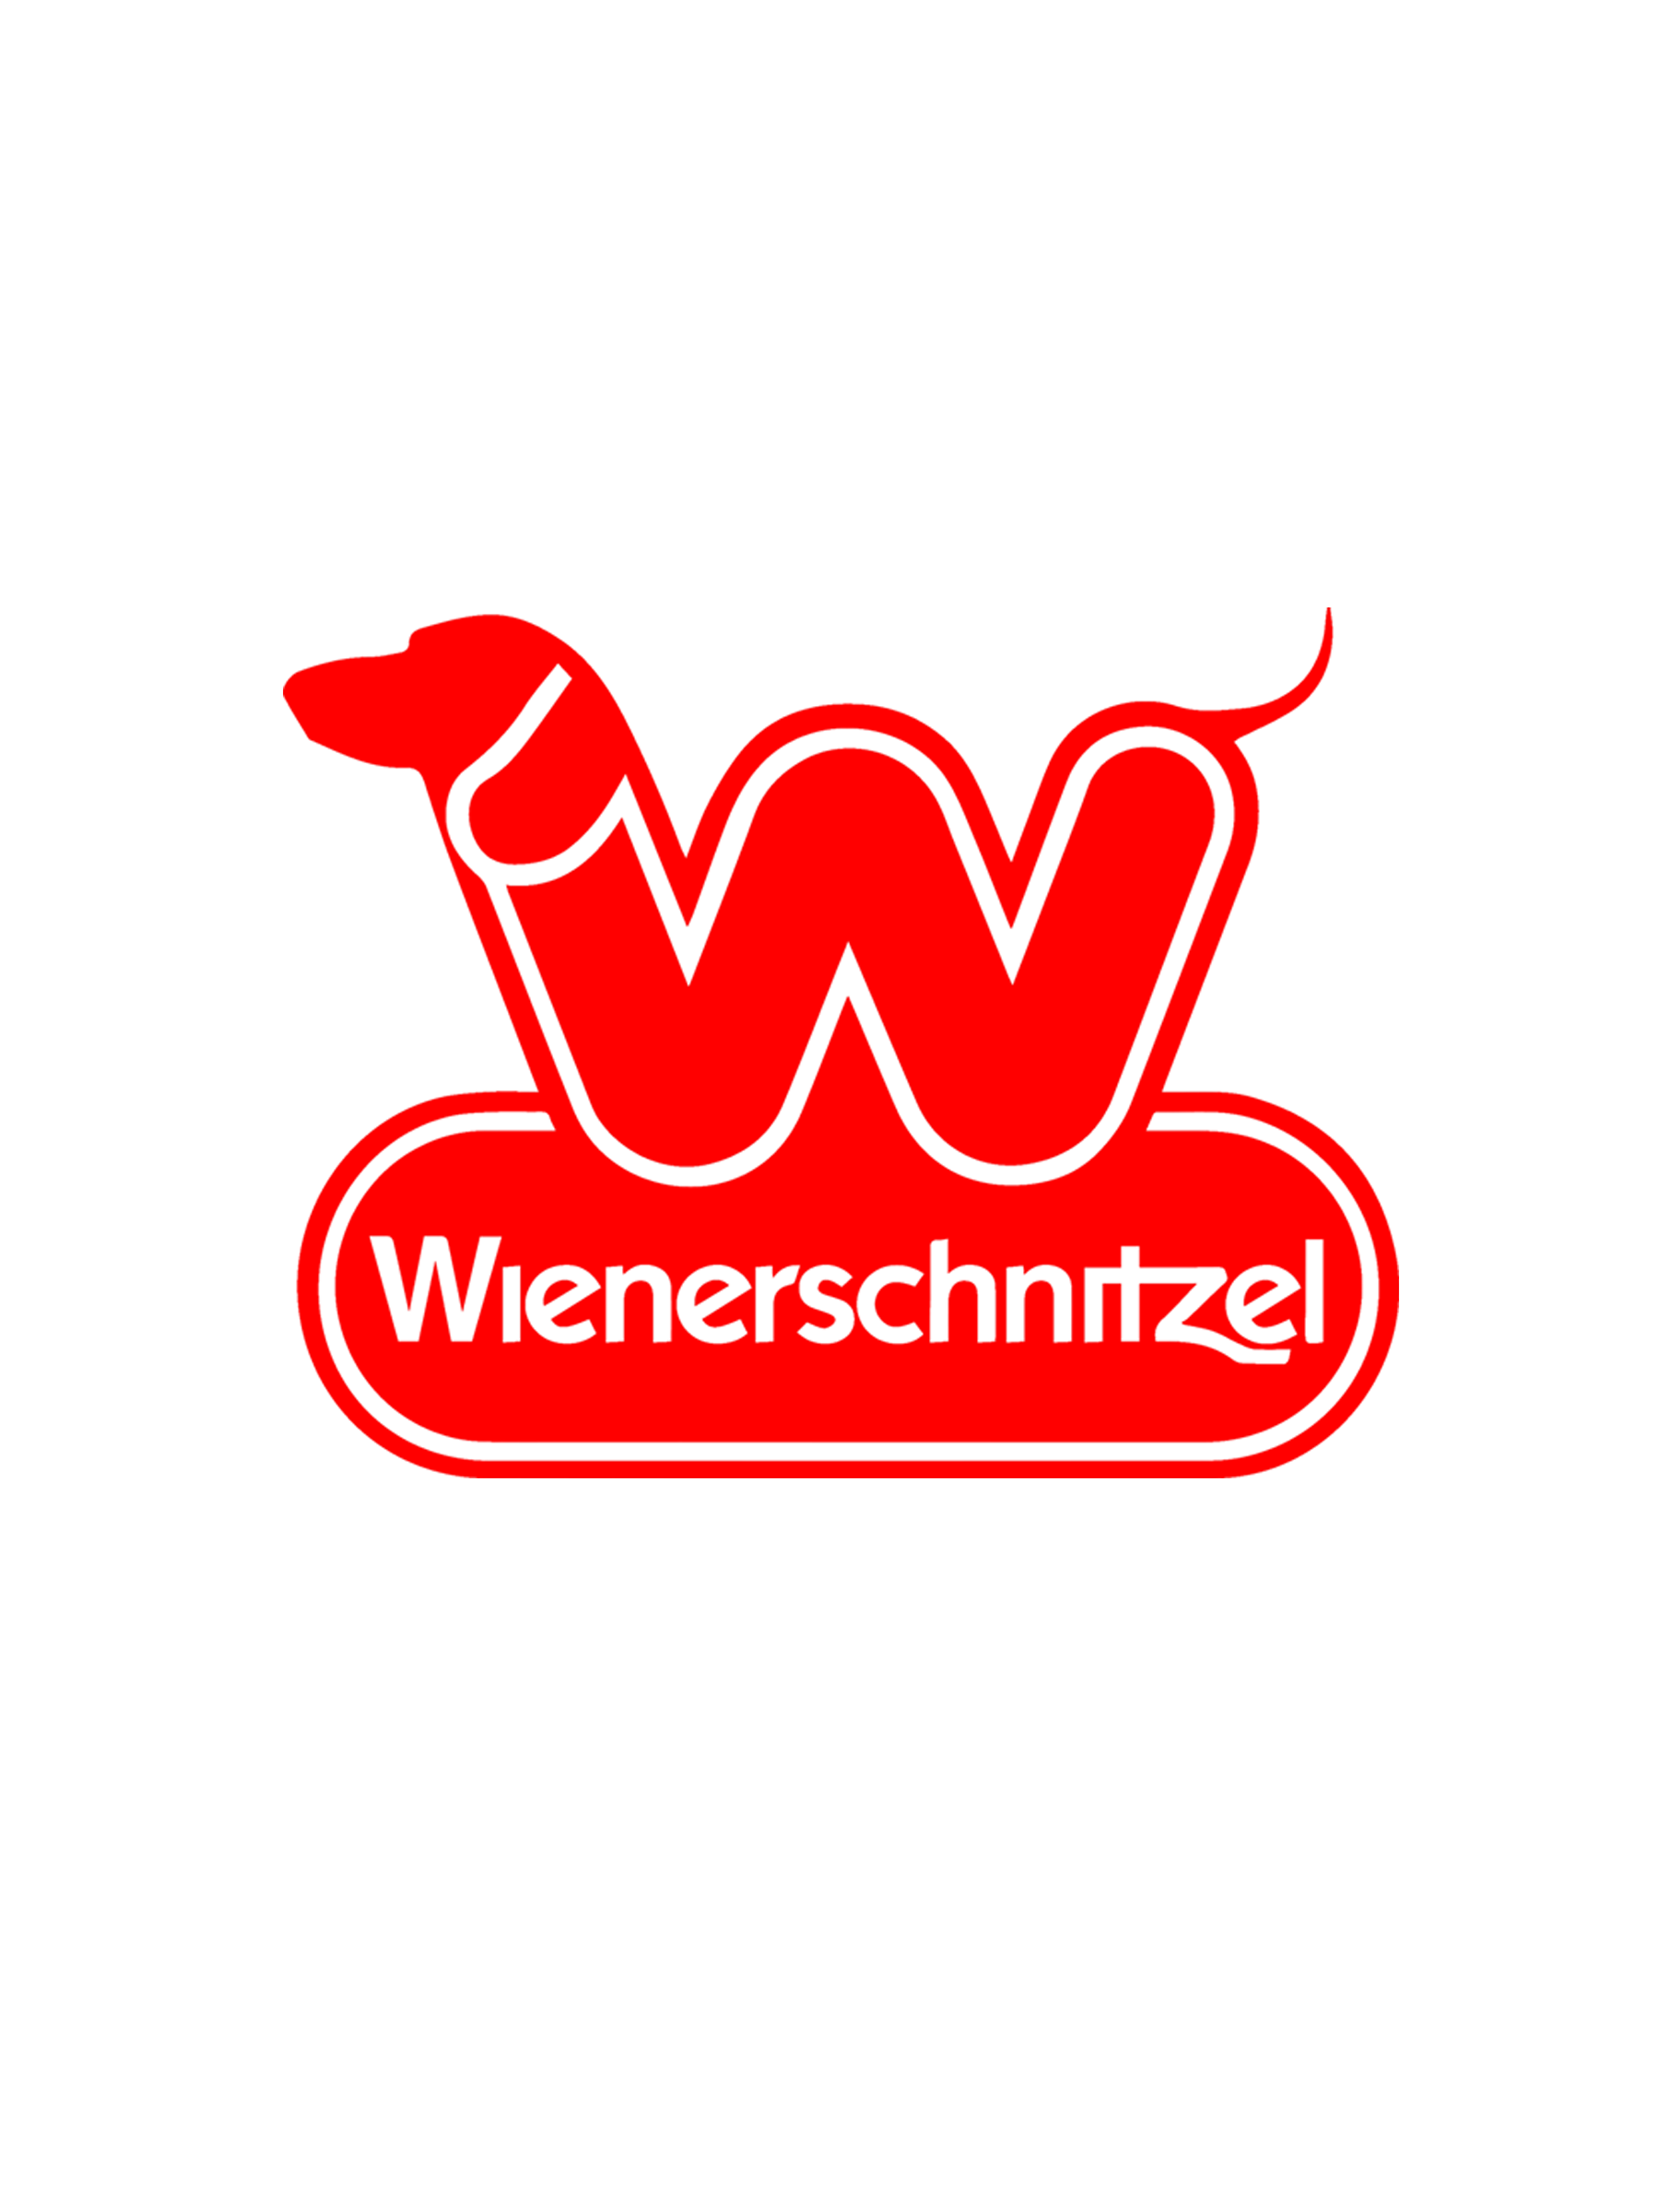 Weinerschntizel Original Local food restaurant